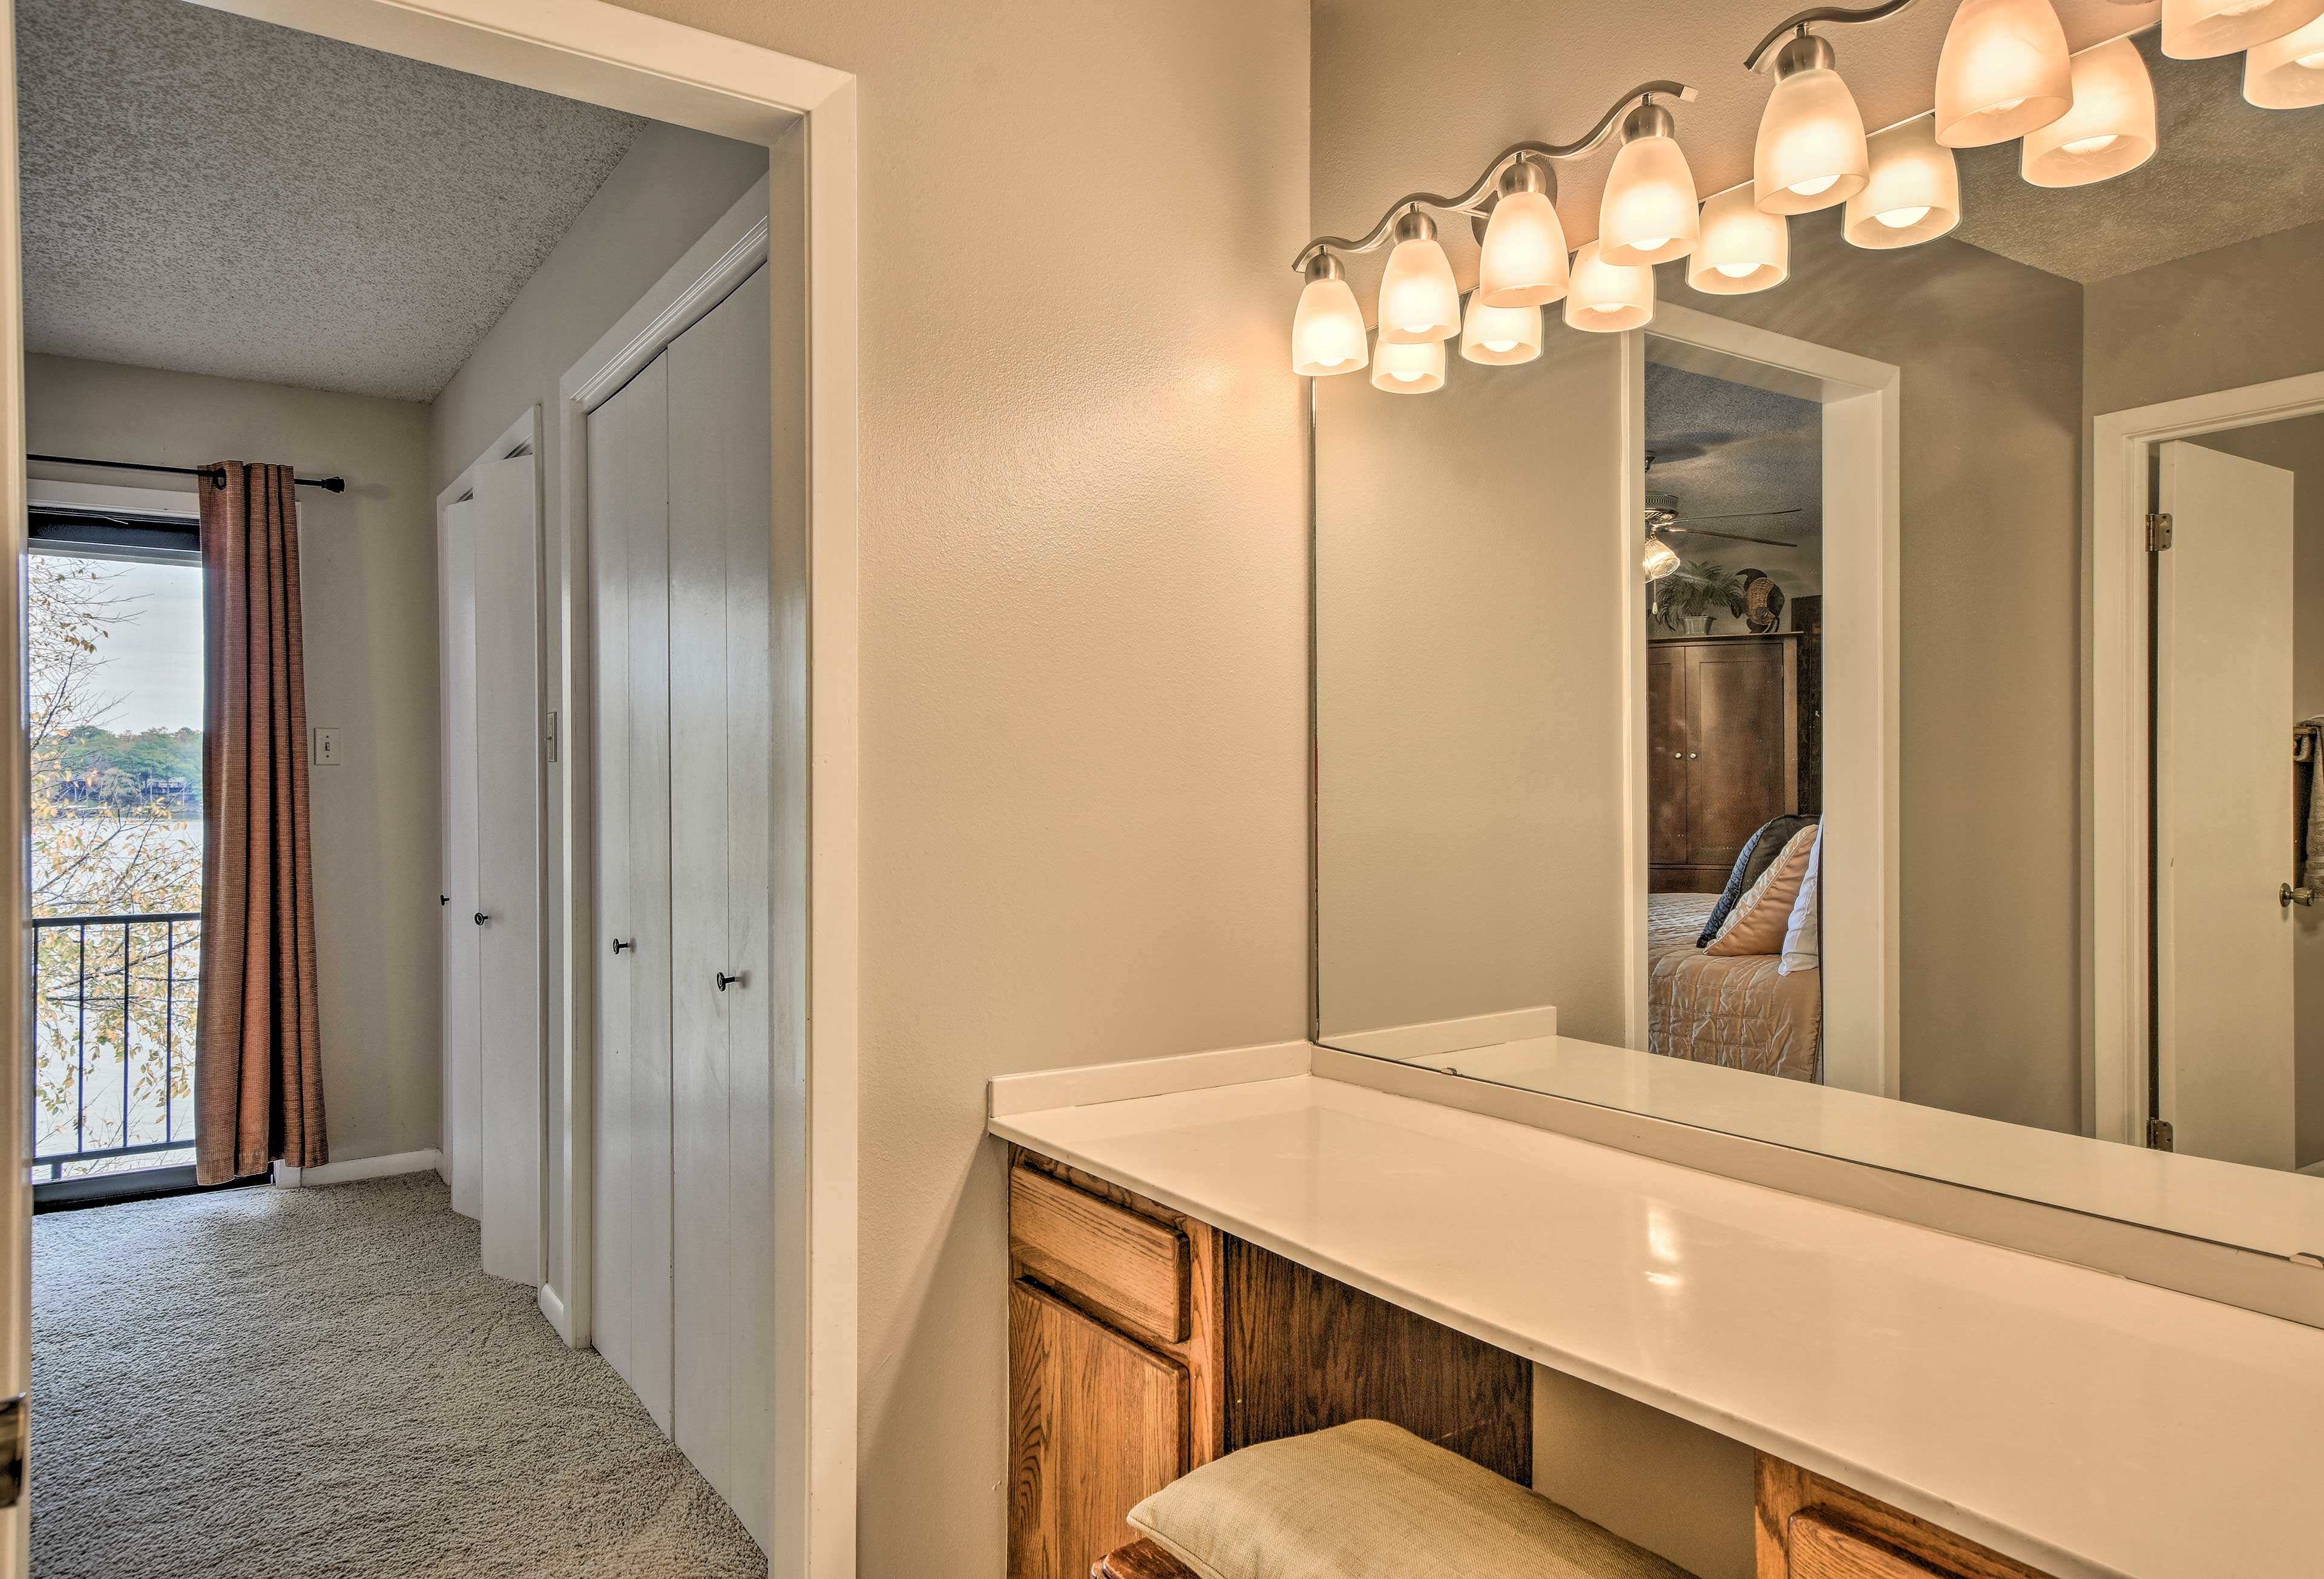 Ample counter space makes it easy to get ready in the morning.